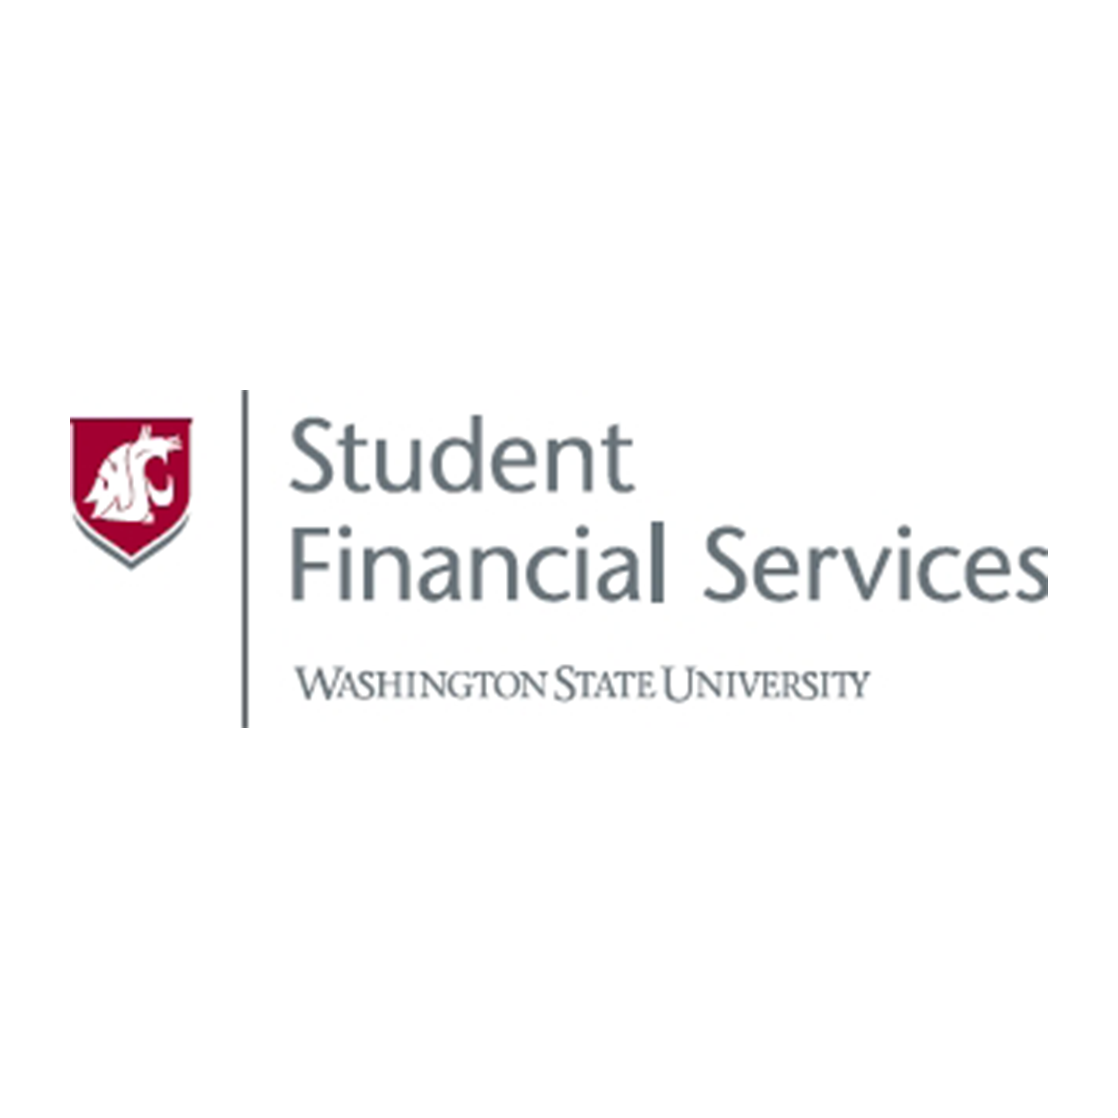 Student Financial Services Logo